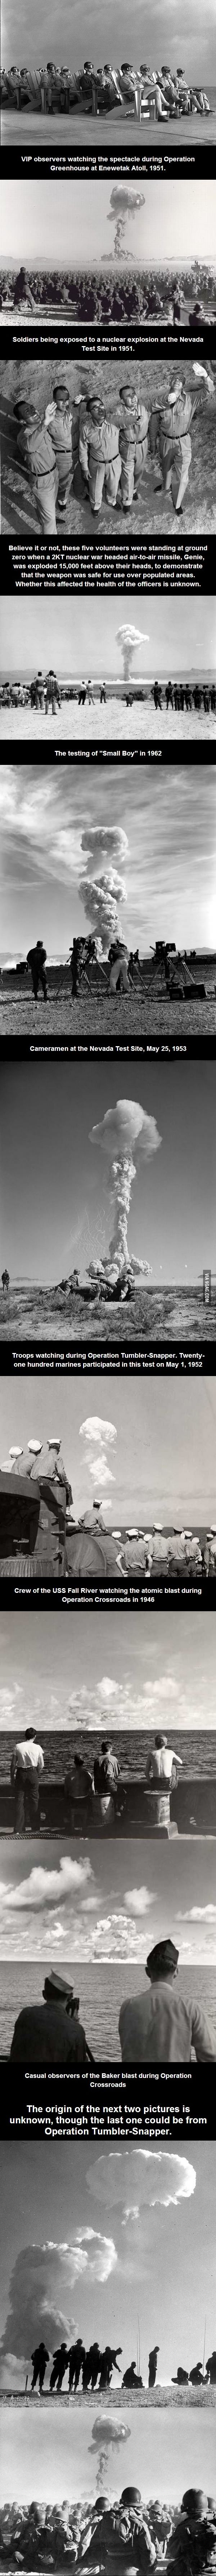 How to watch a nuclear explosion.